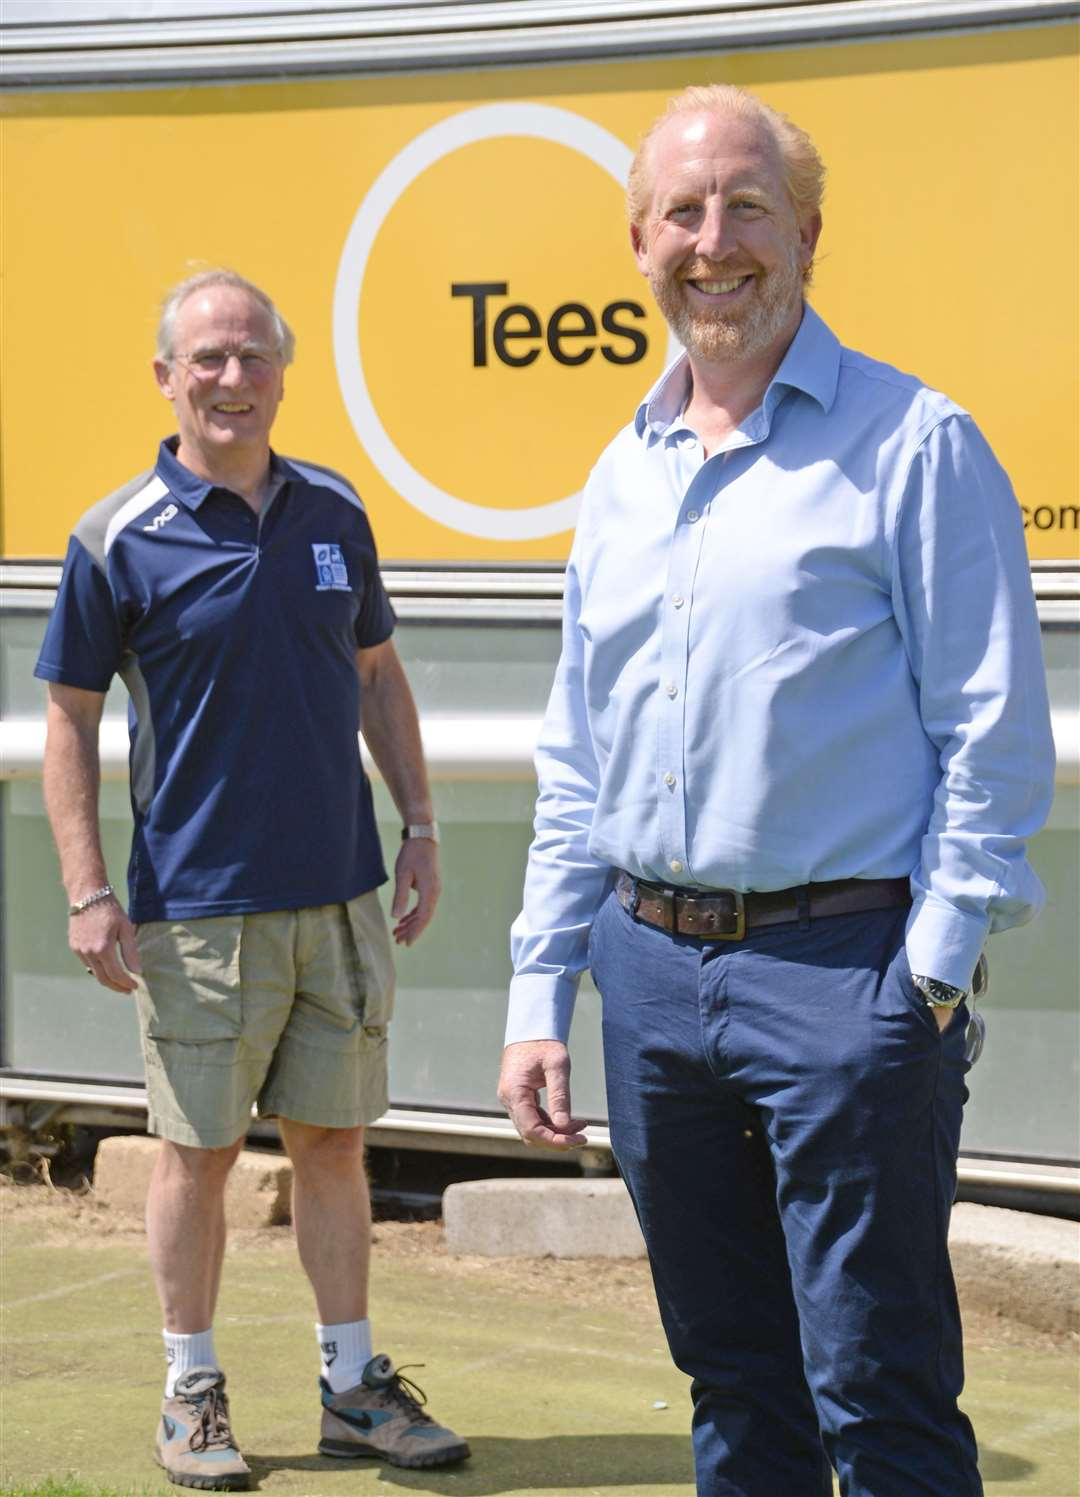 BSRFC chairman Colin Tilley, left, and Tees group managing director Ashton Hunt at Silver Leys. Picture: Vikki Lince